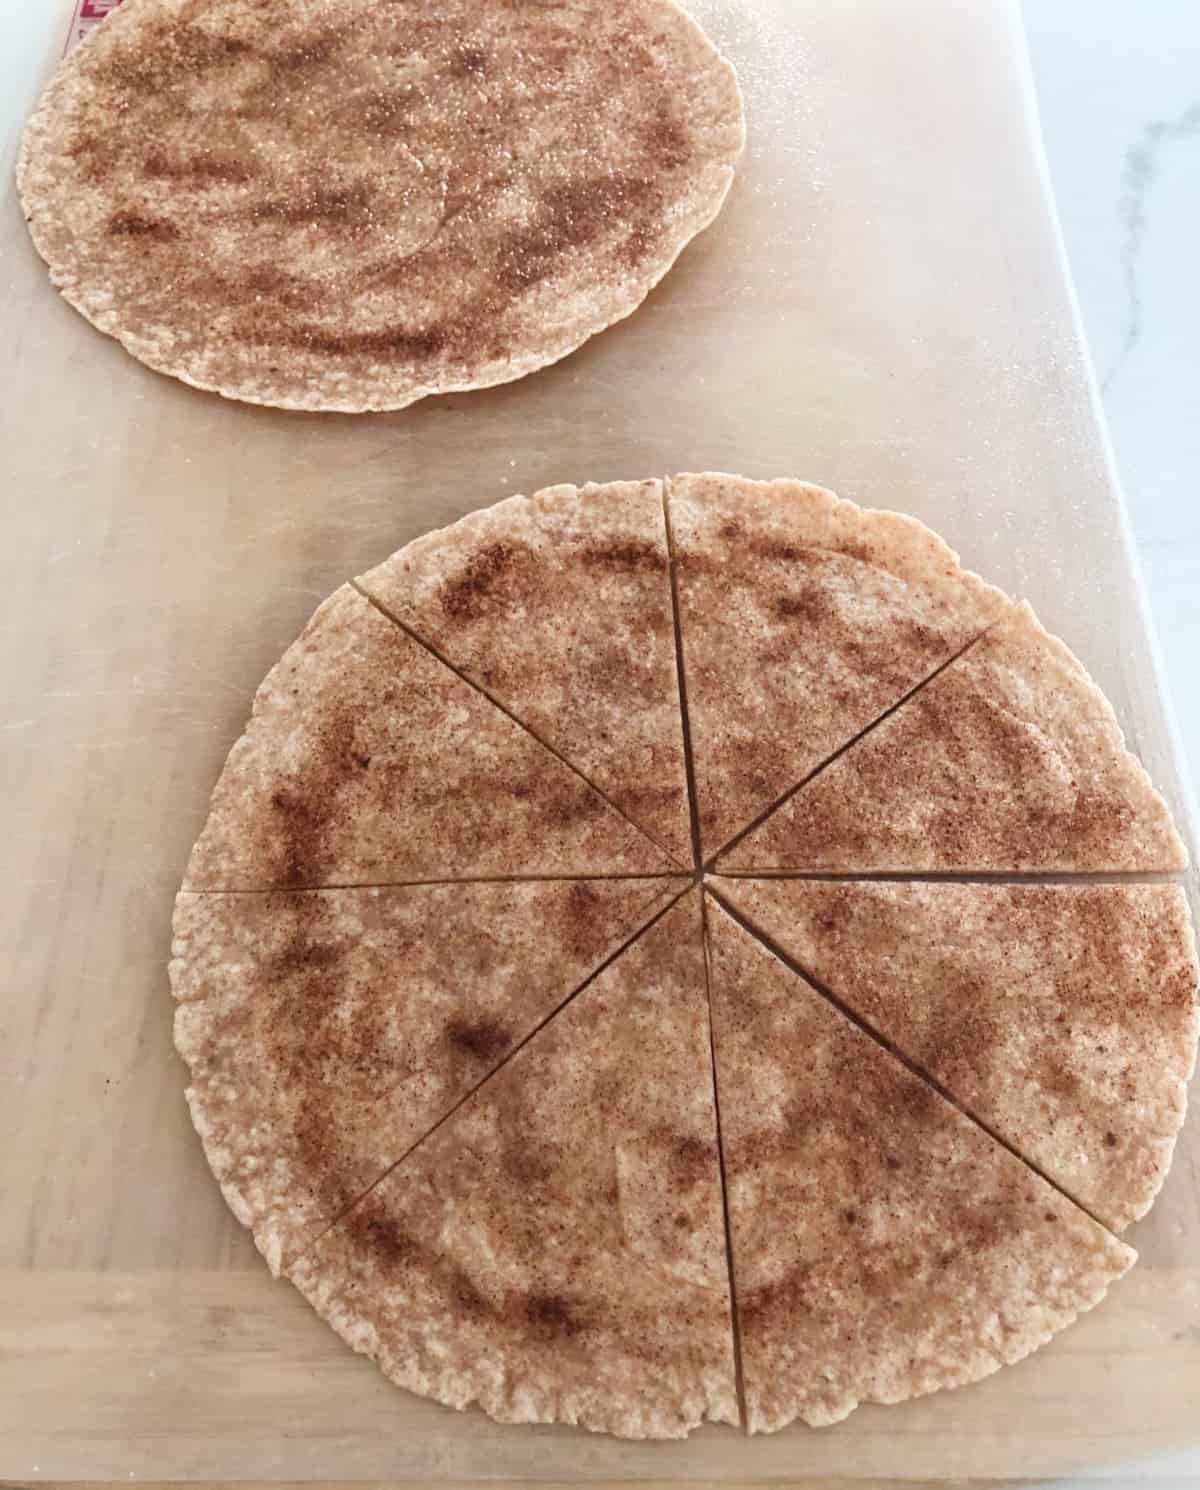 Whole wheat tortillas topped with cinnamon-sugar and cut into 8 wedges.